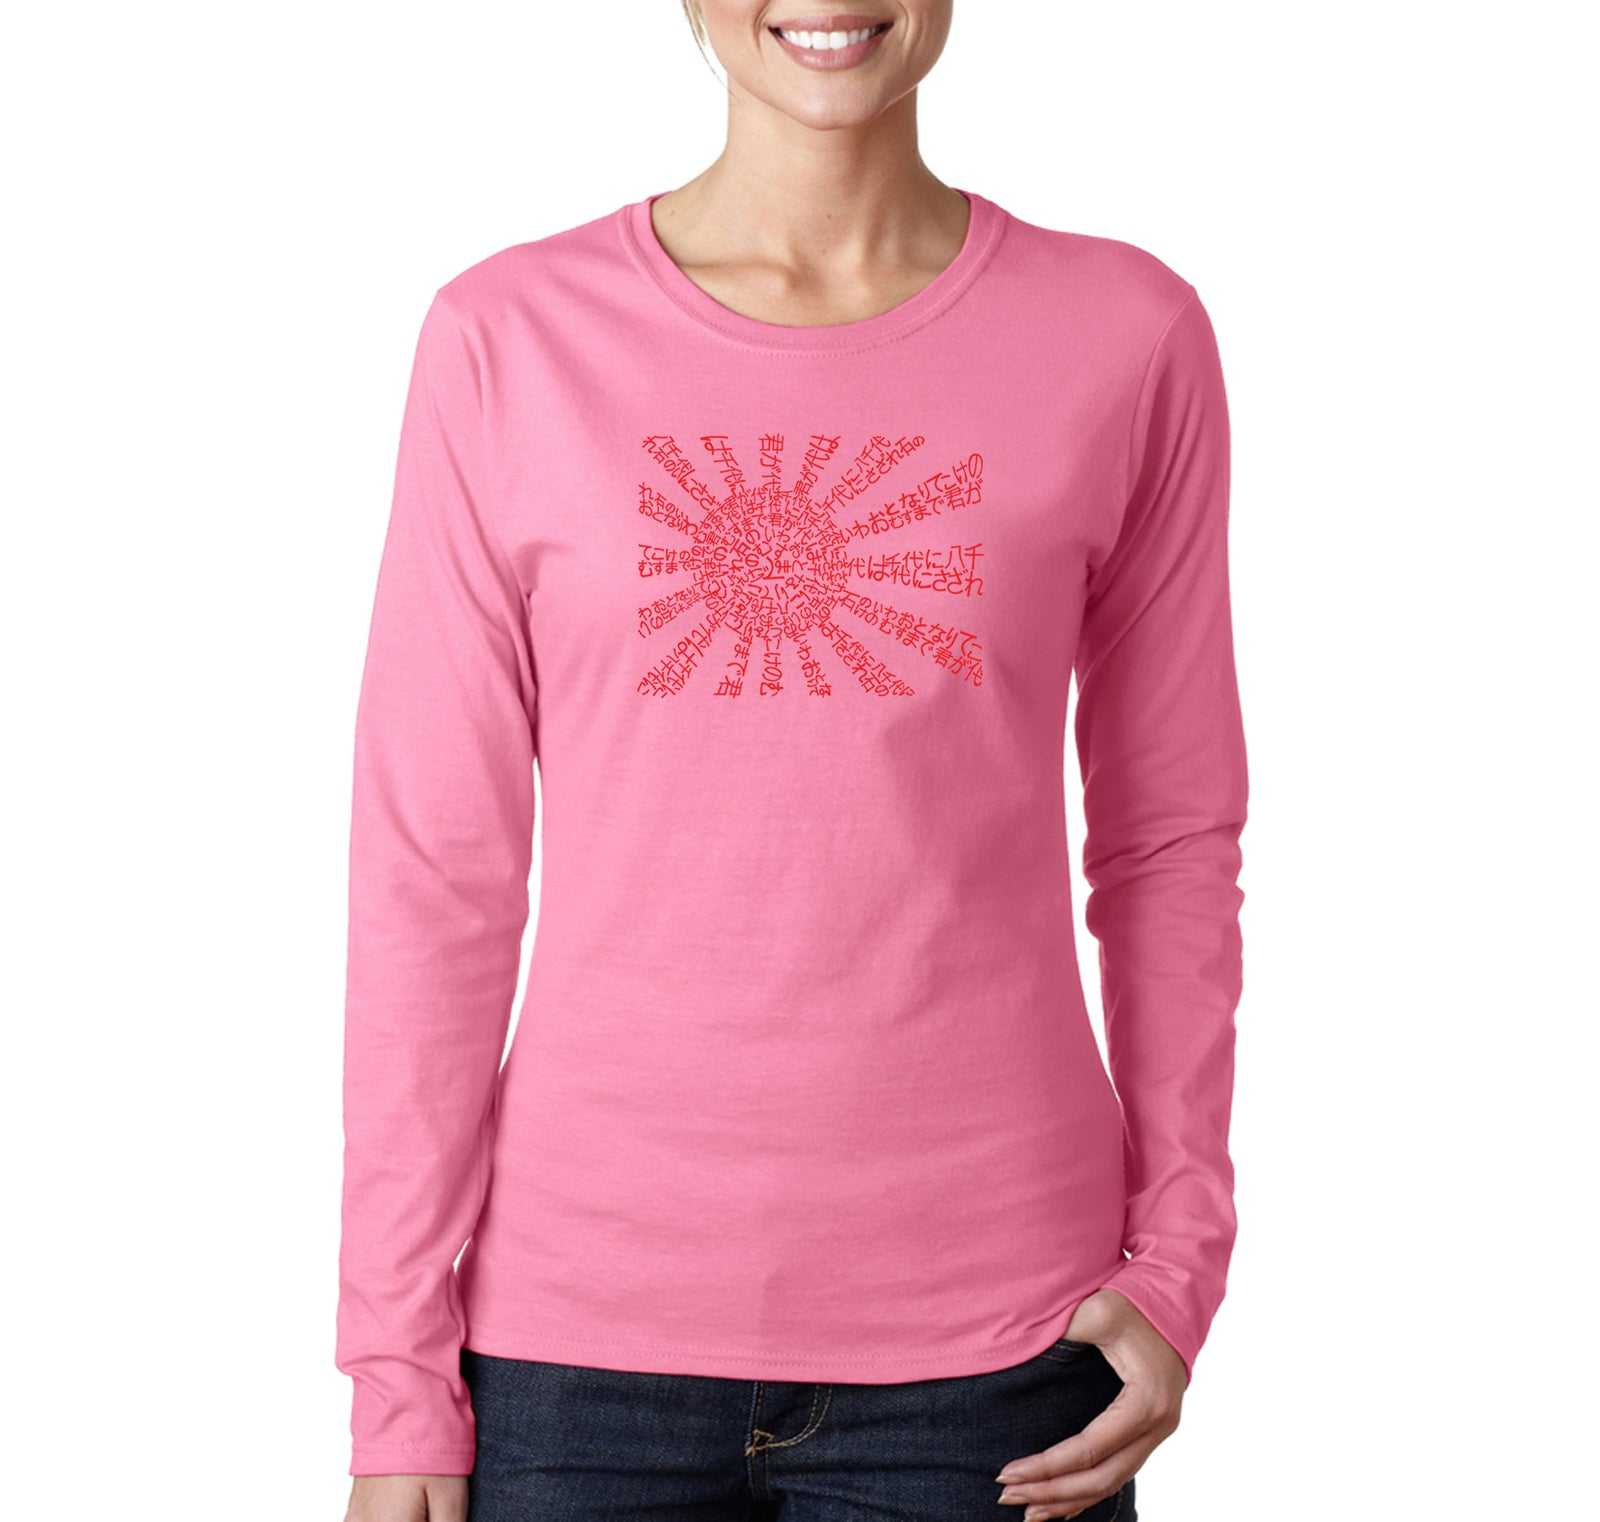 Women's Long Sleeve T-Shirt - Lyrics To The Japanese National Anthem